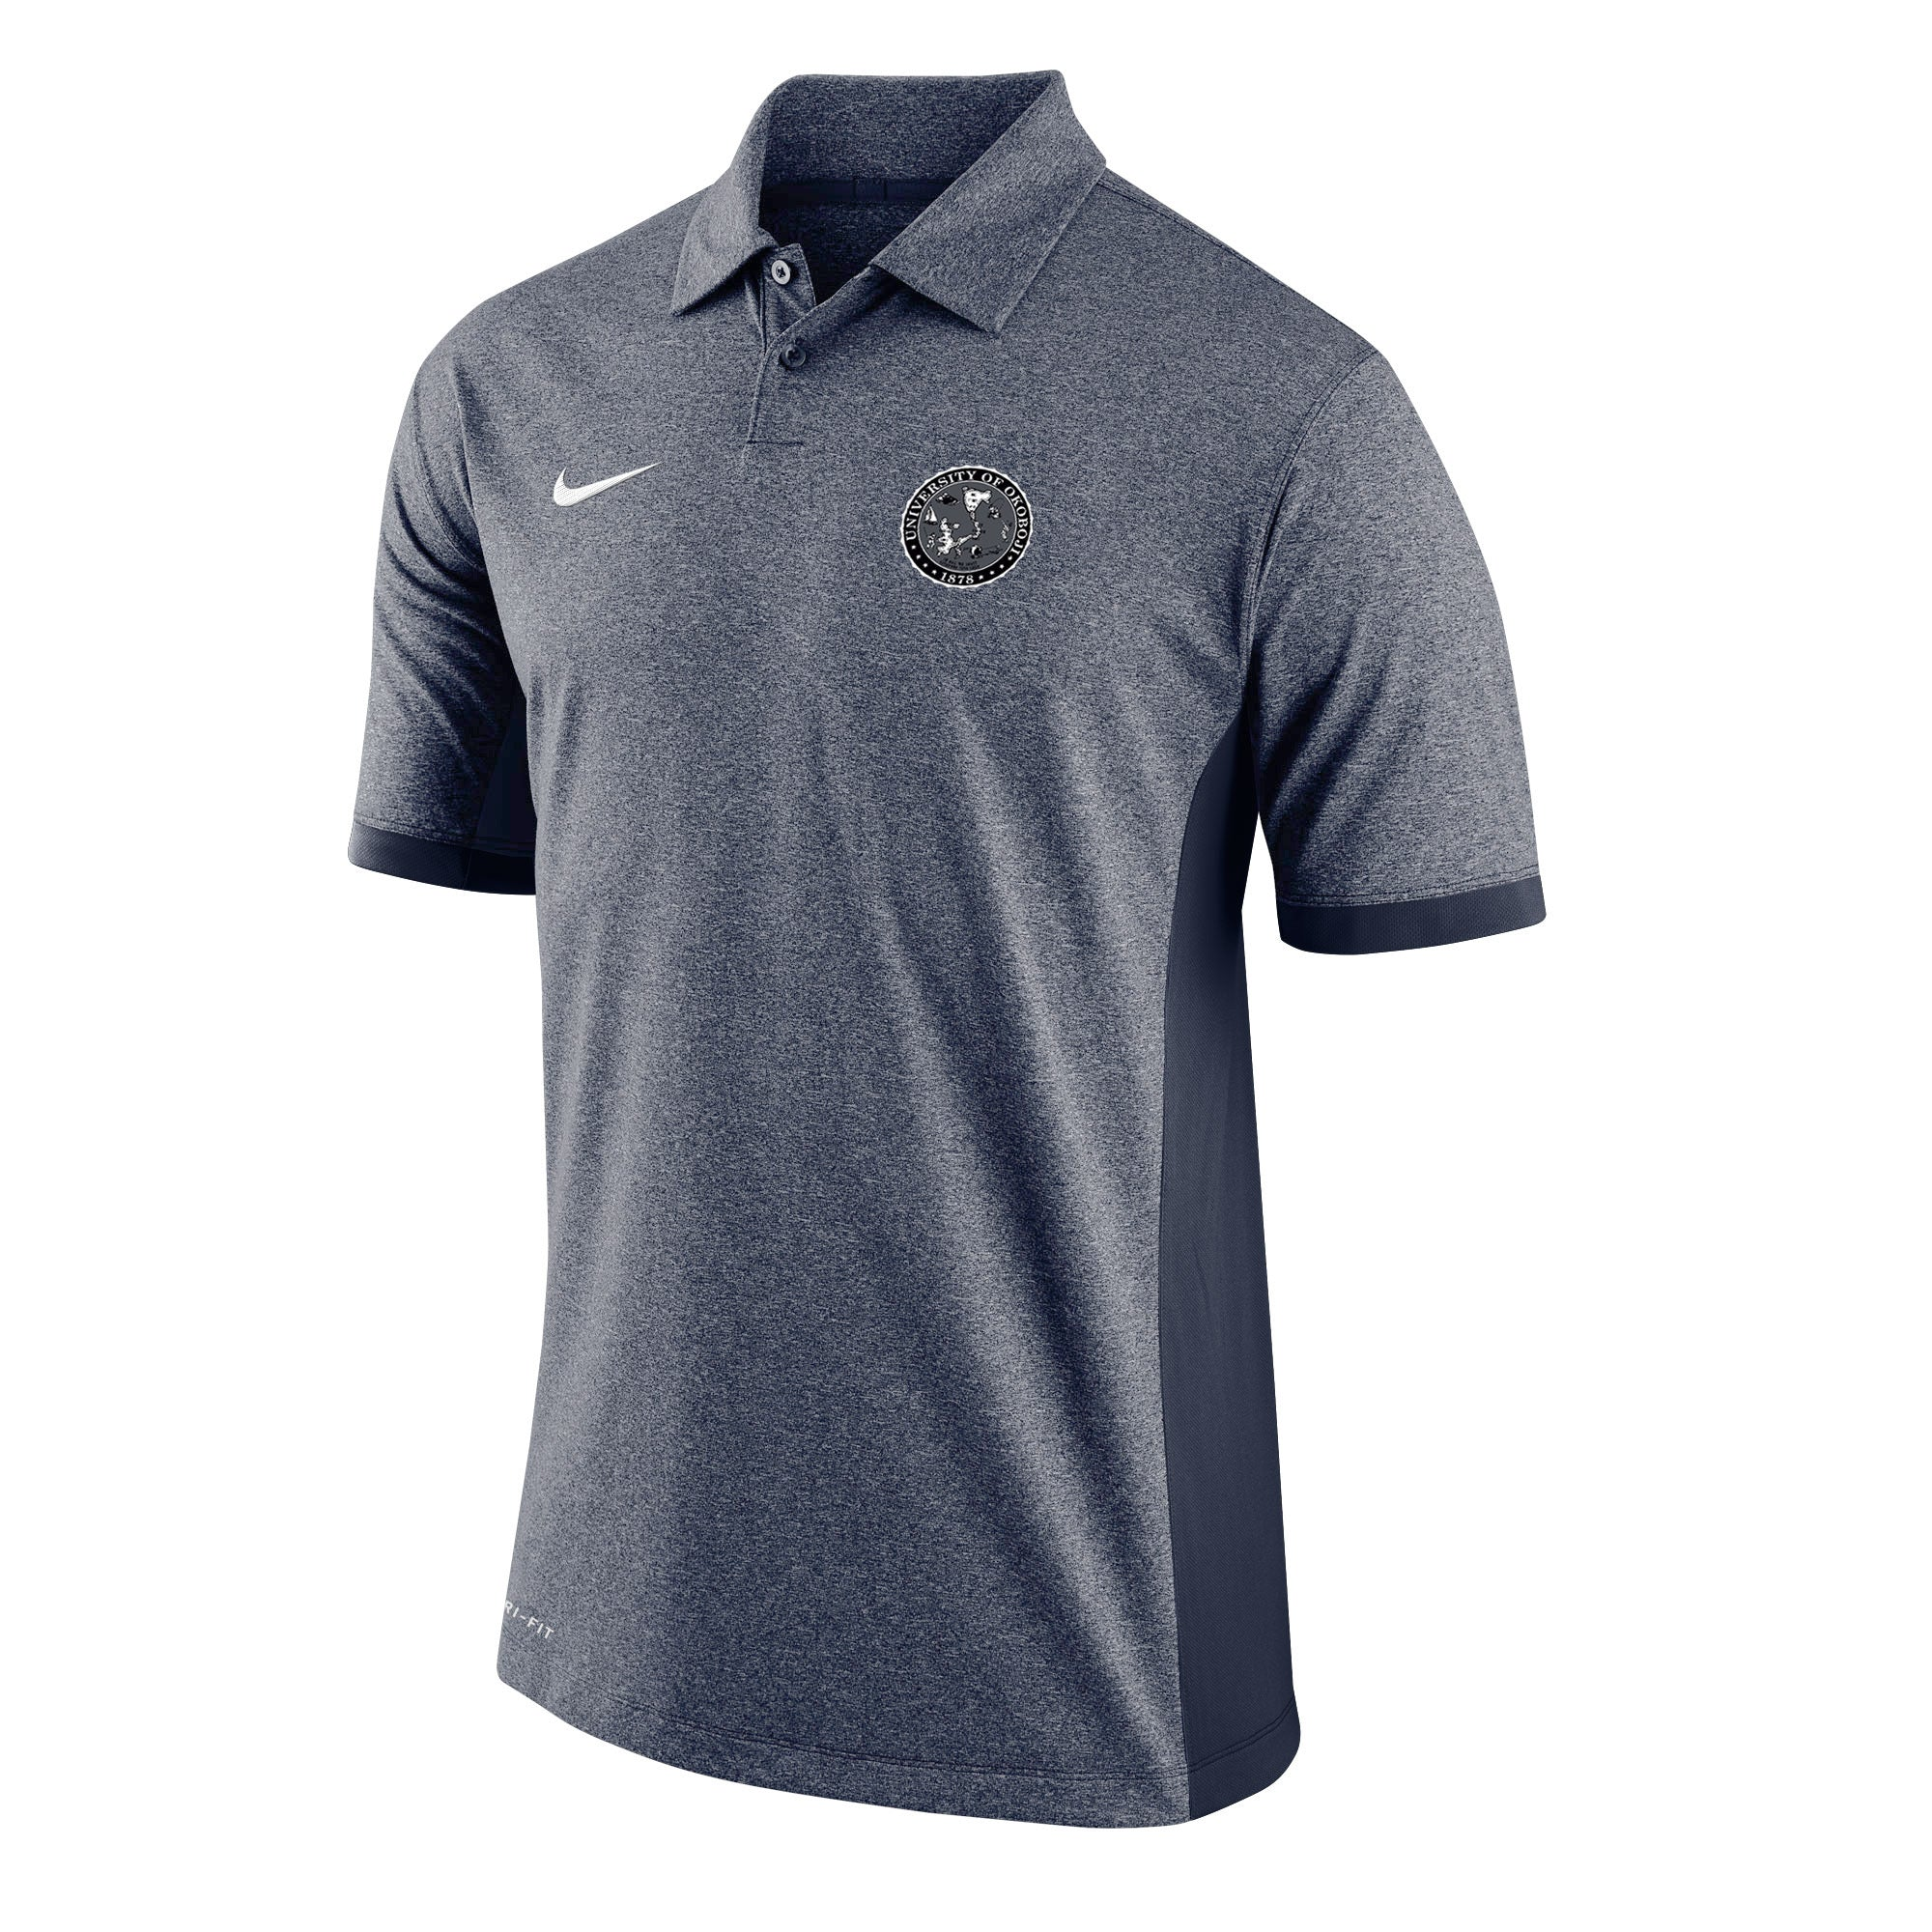 Nike Victory Block Golf Polo - Navy Heather